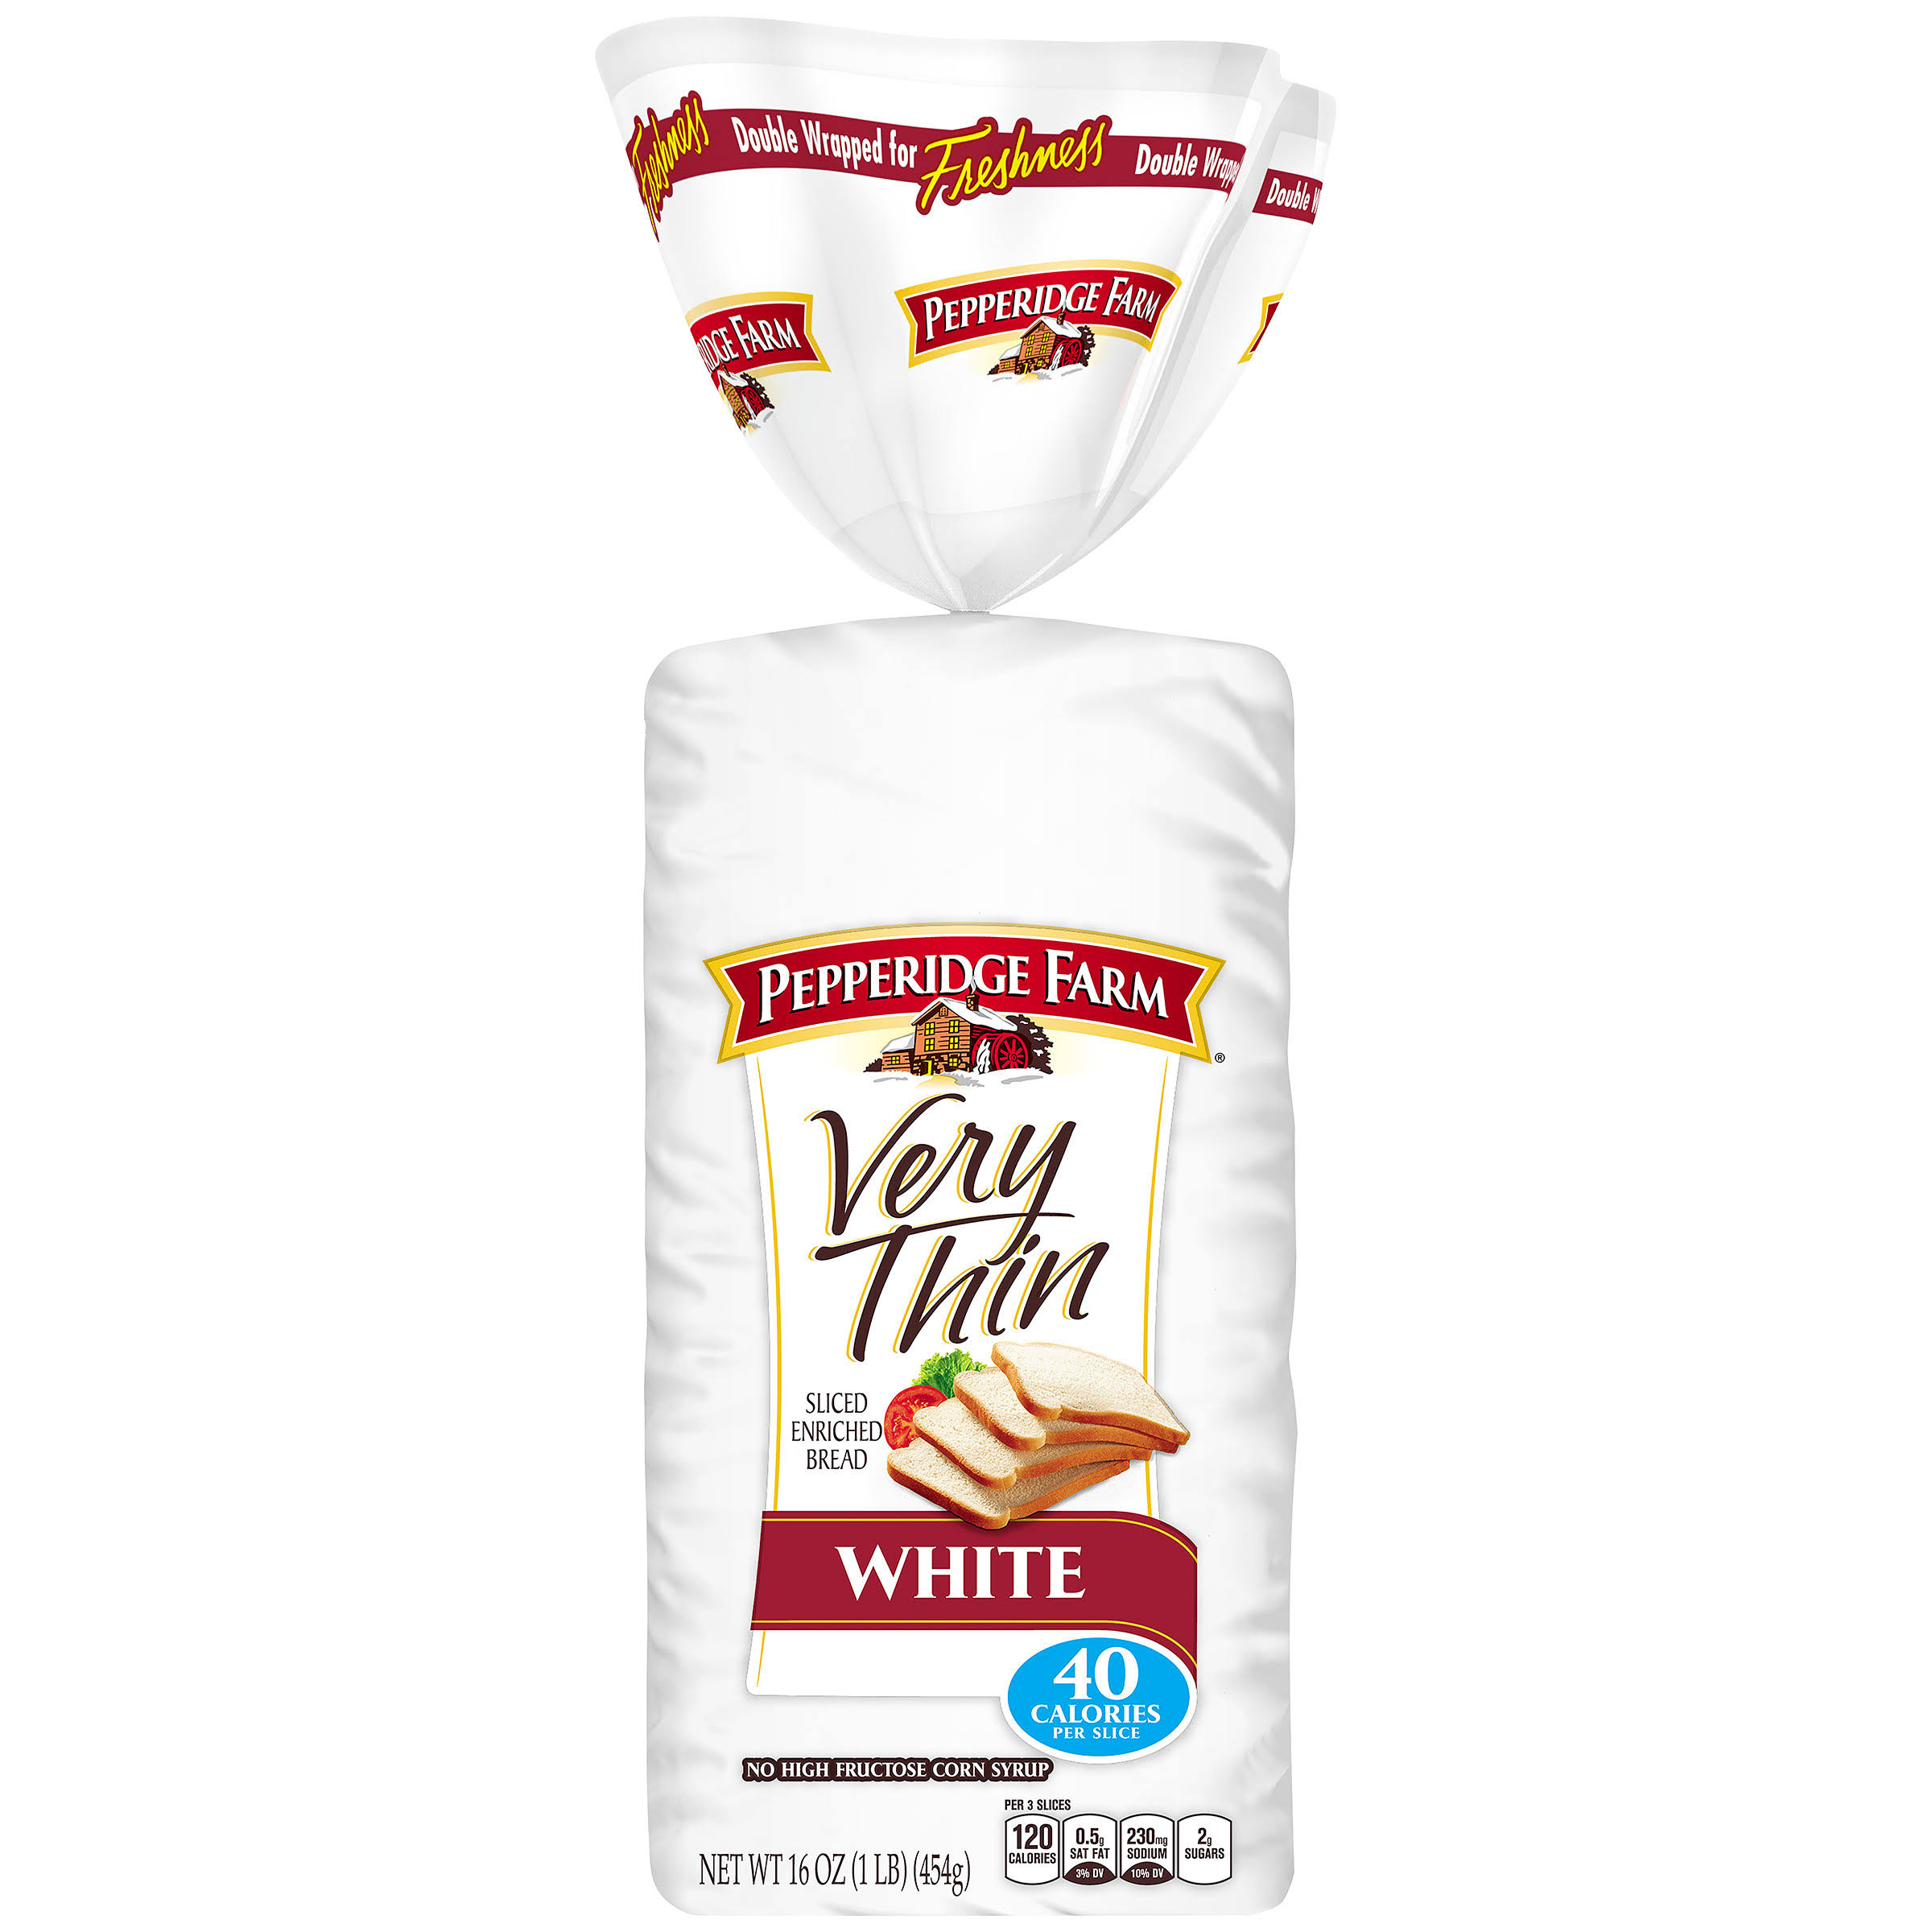 Bread Sliced Enriched White Bread - 16oz